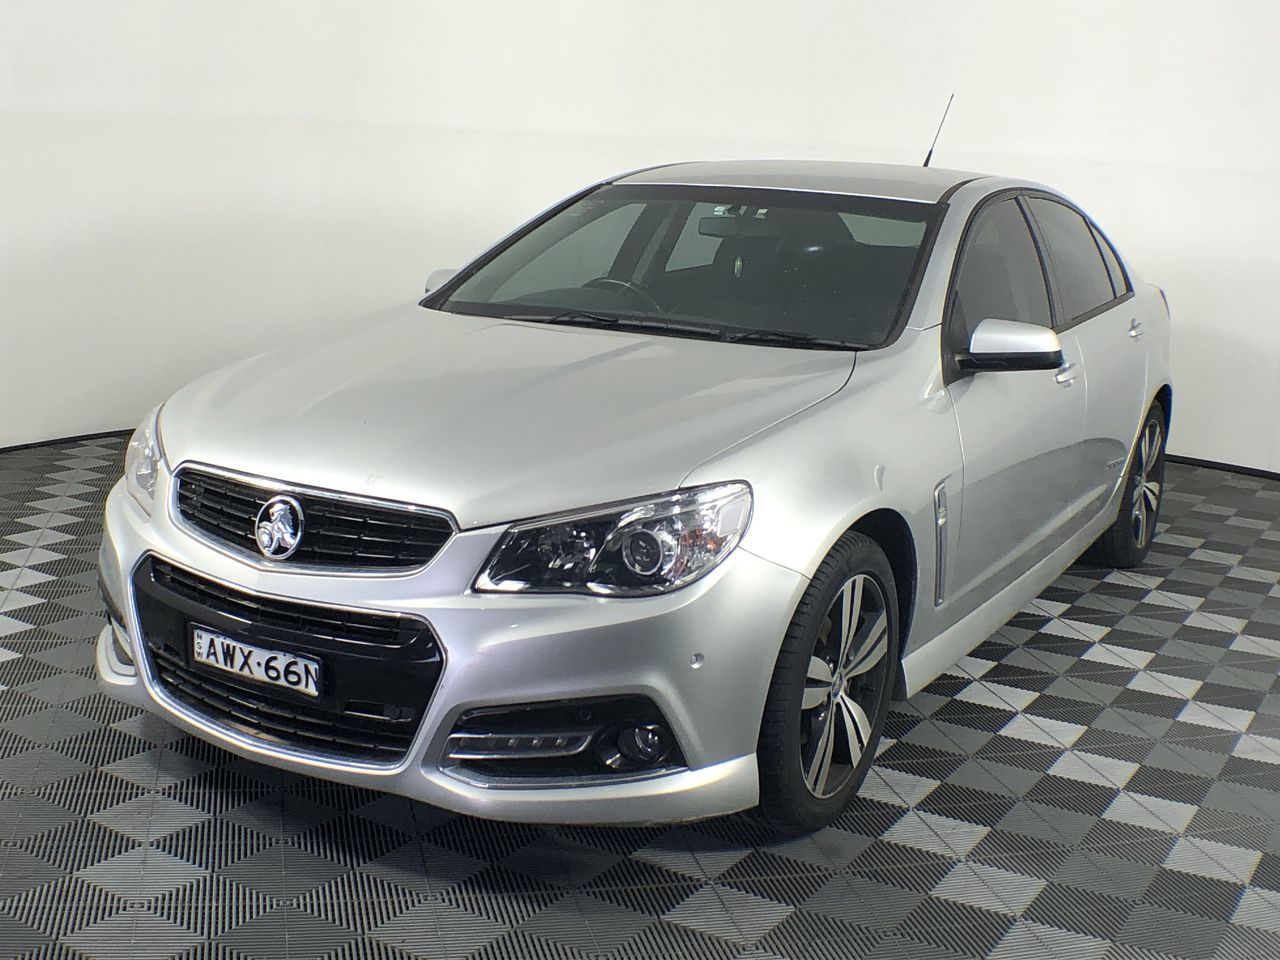 2014 Holden Commodore SV6 Storm Special ED VF Automatic Sedan